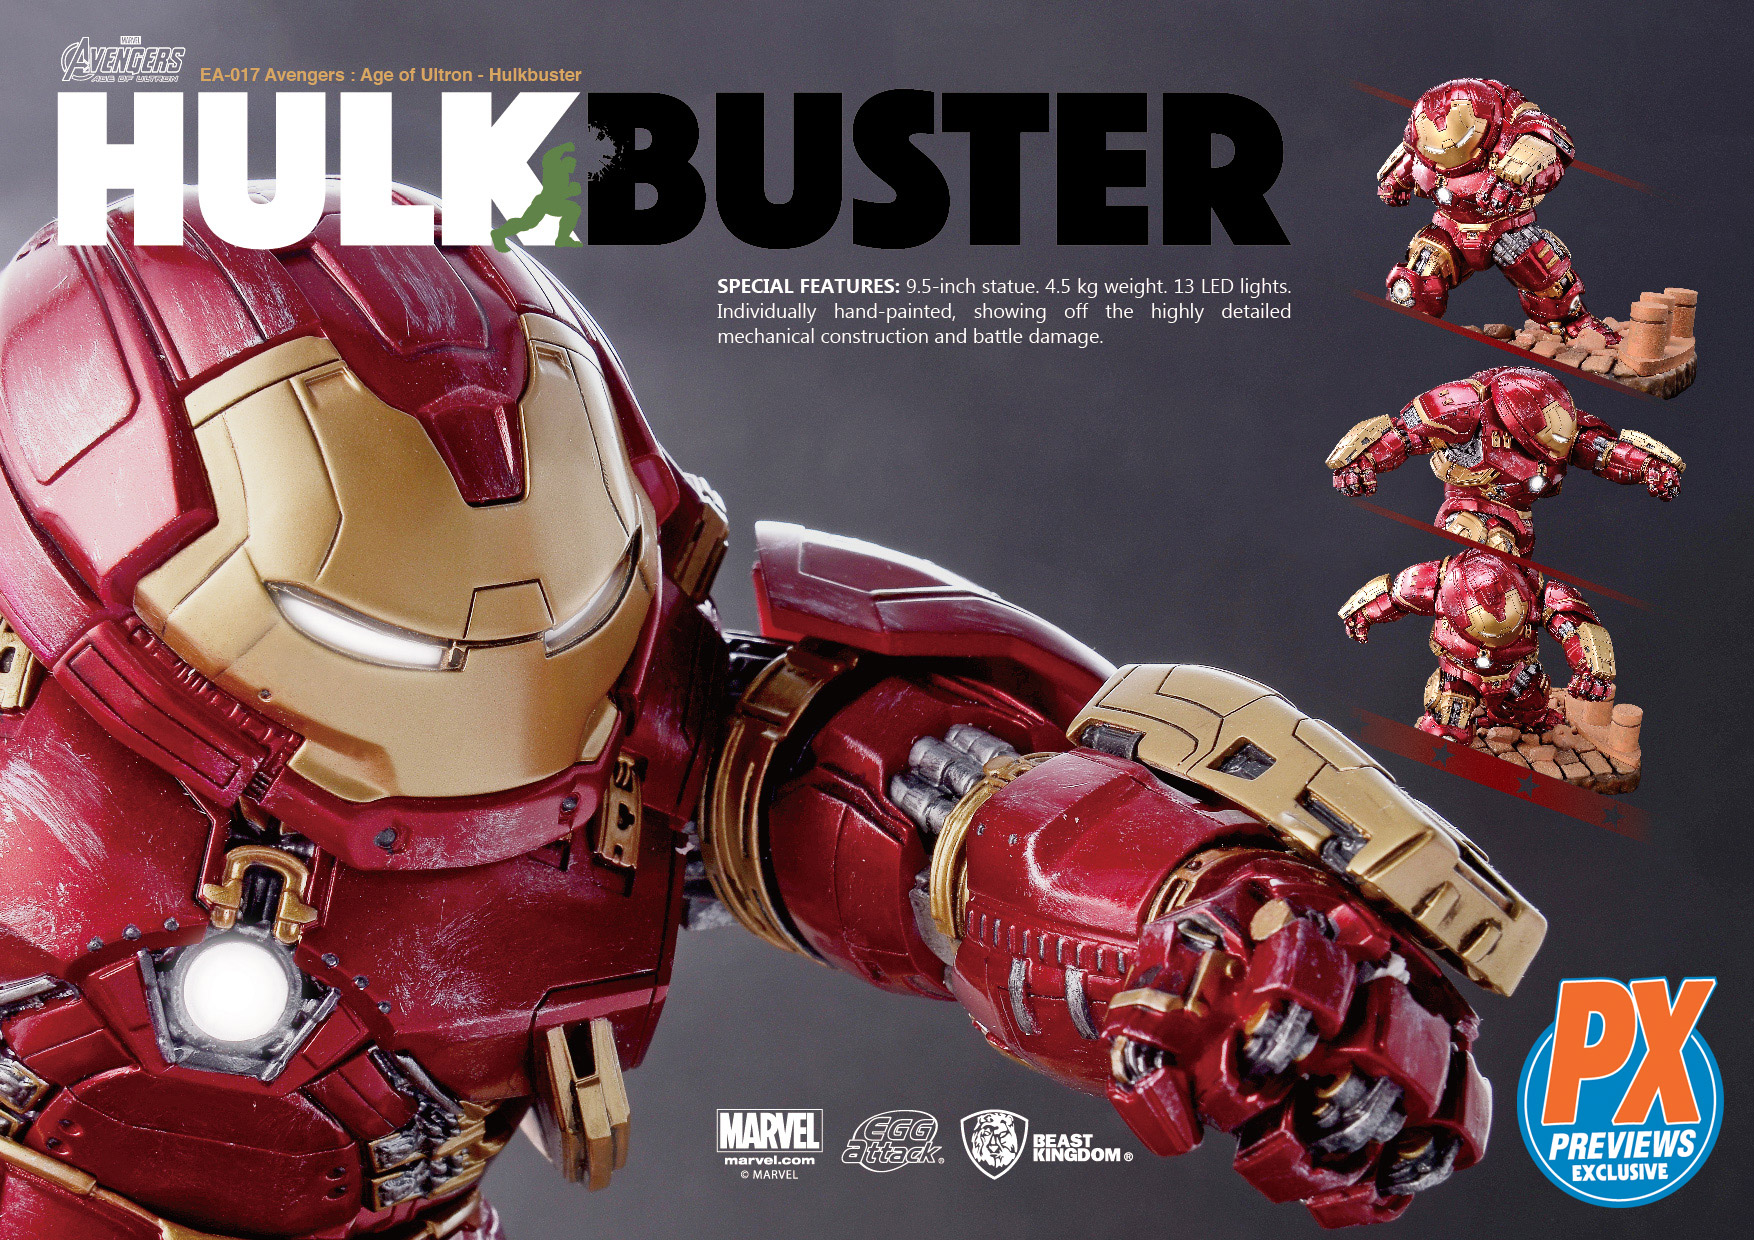 Hulkbuster PREVIEWS